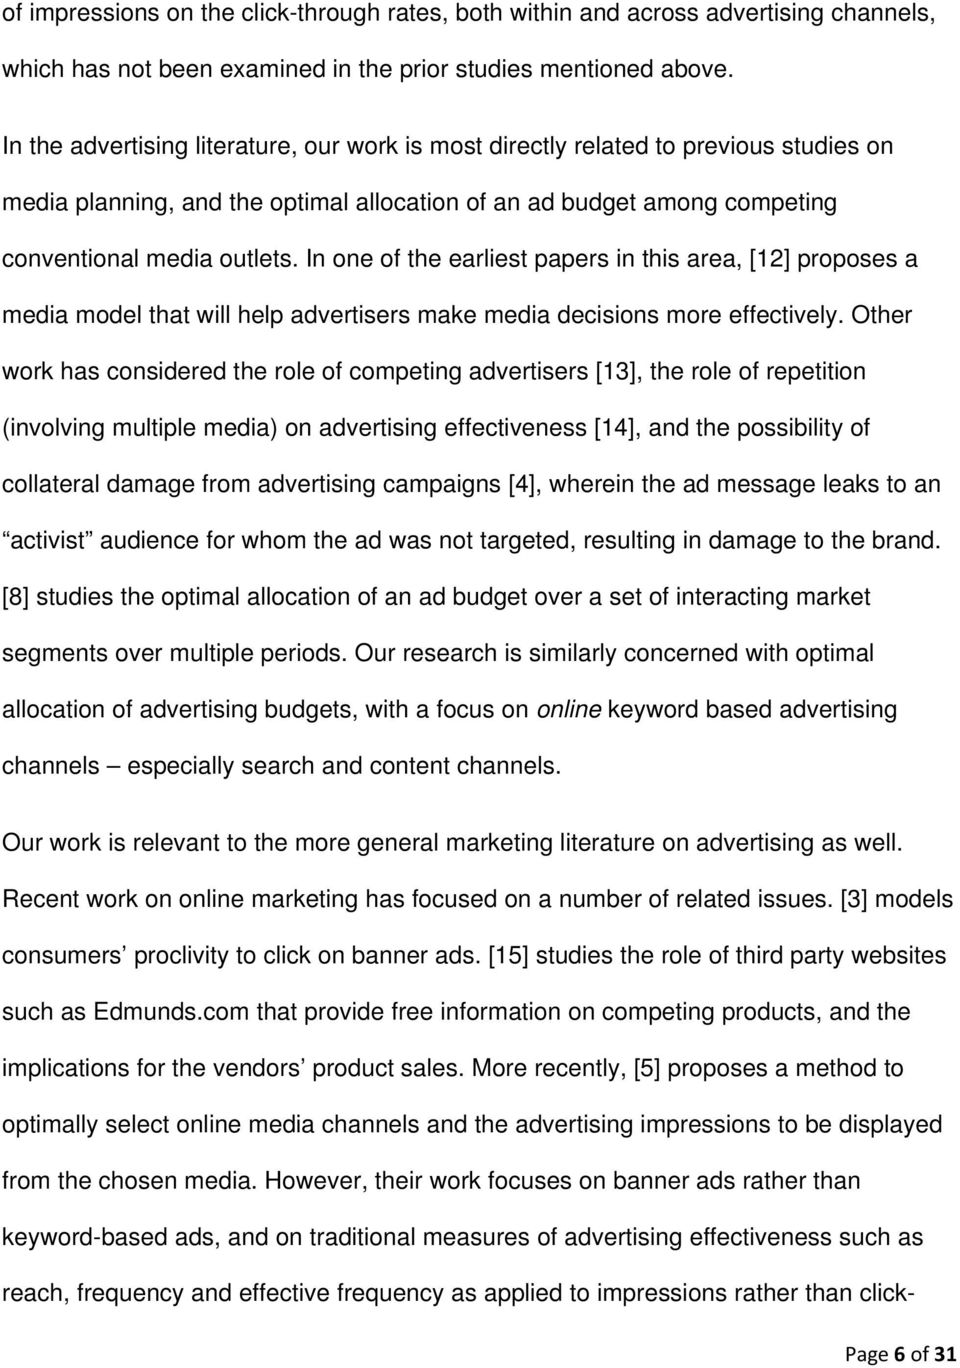 In one of the earliest papers in this area, [12] proposes a media model that will help advertisers make media decisions more effectively.